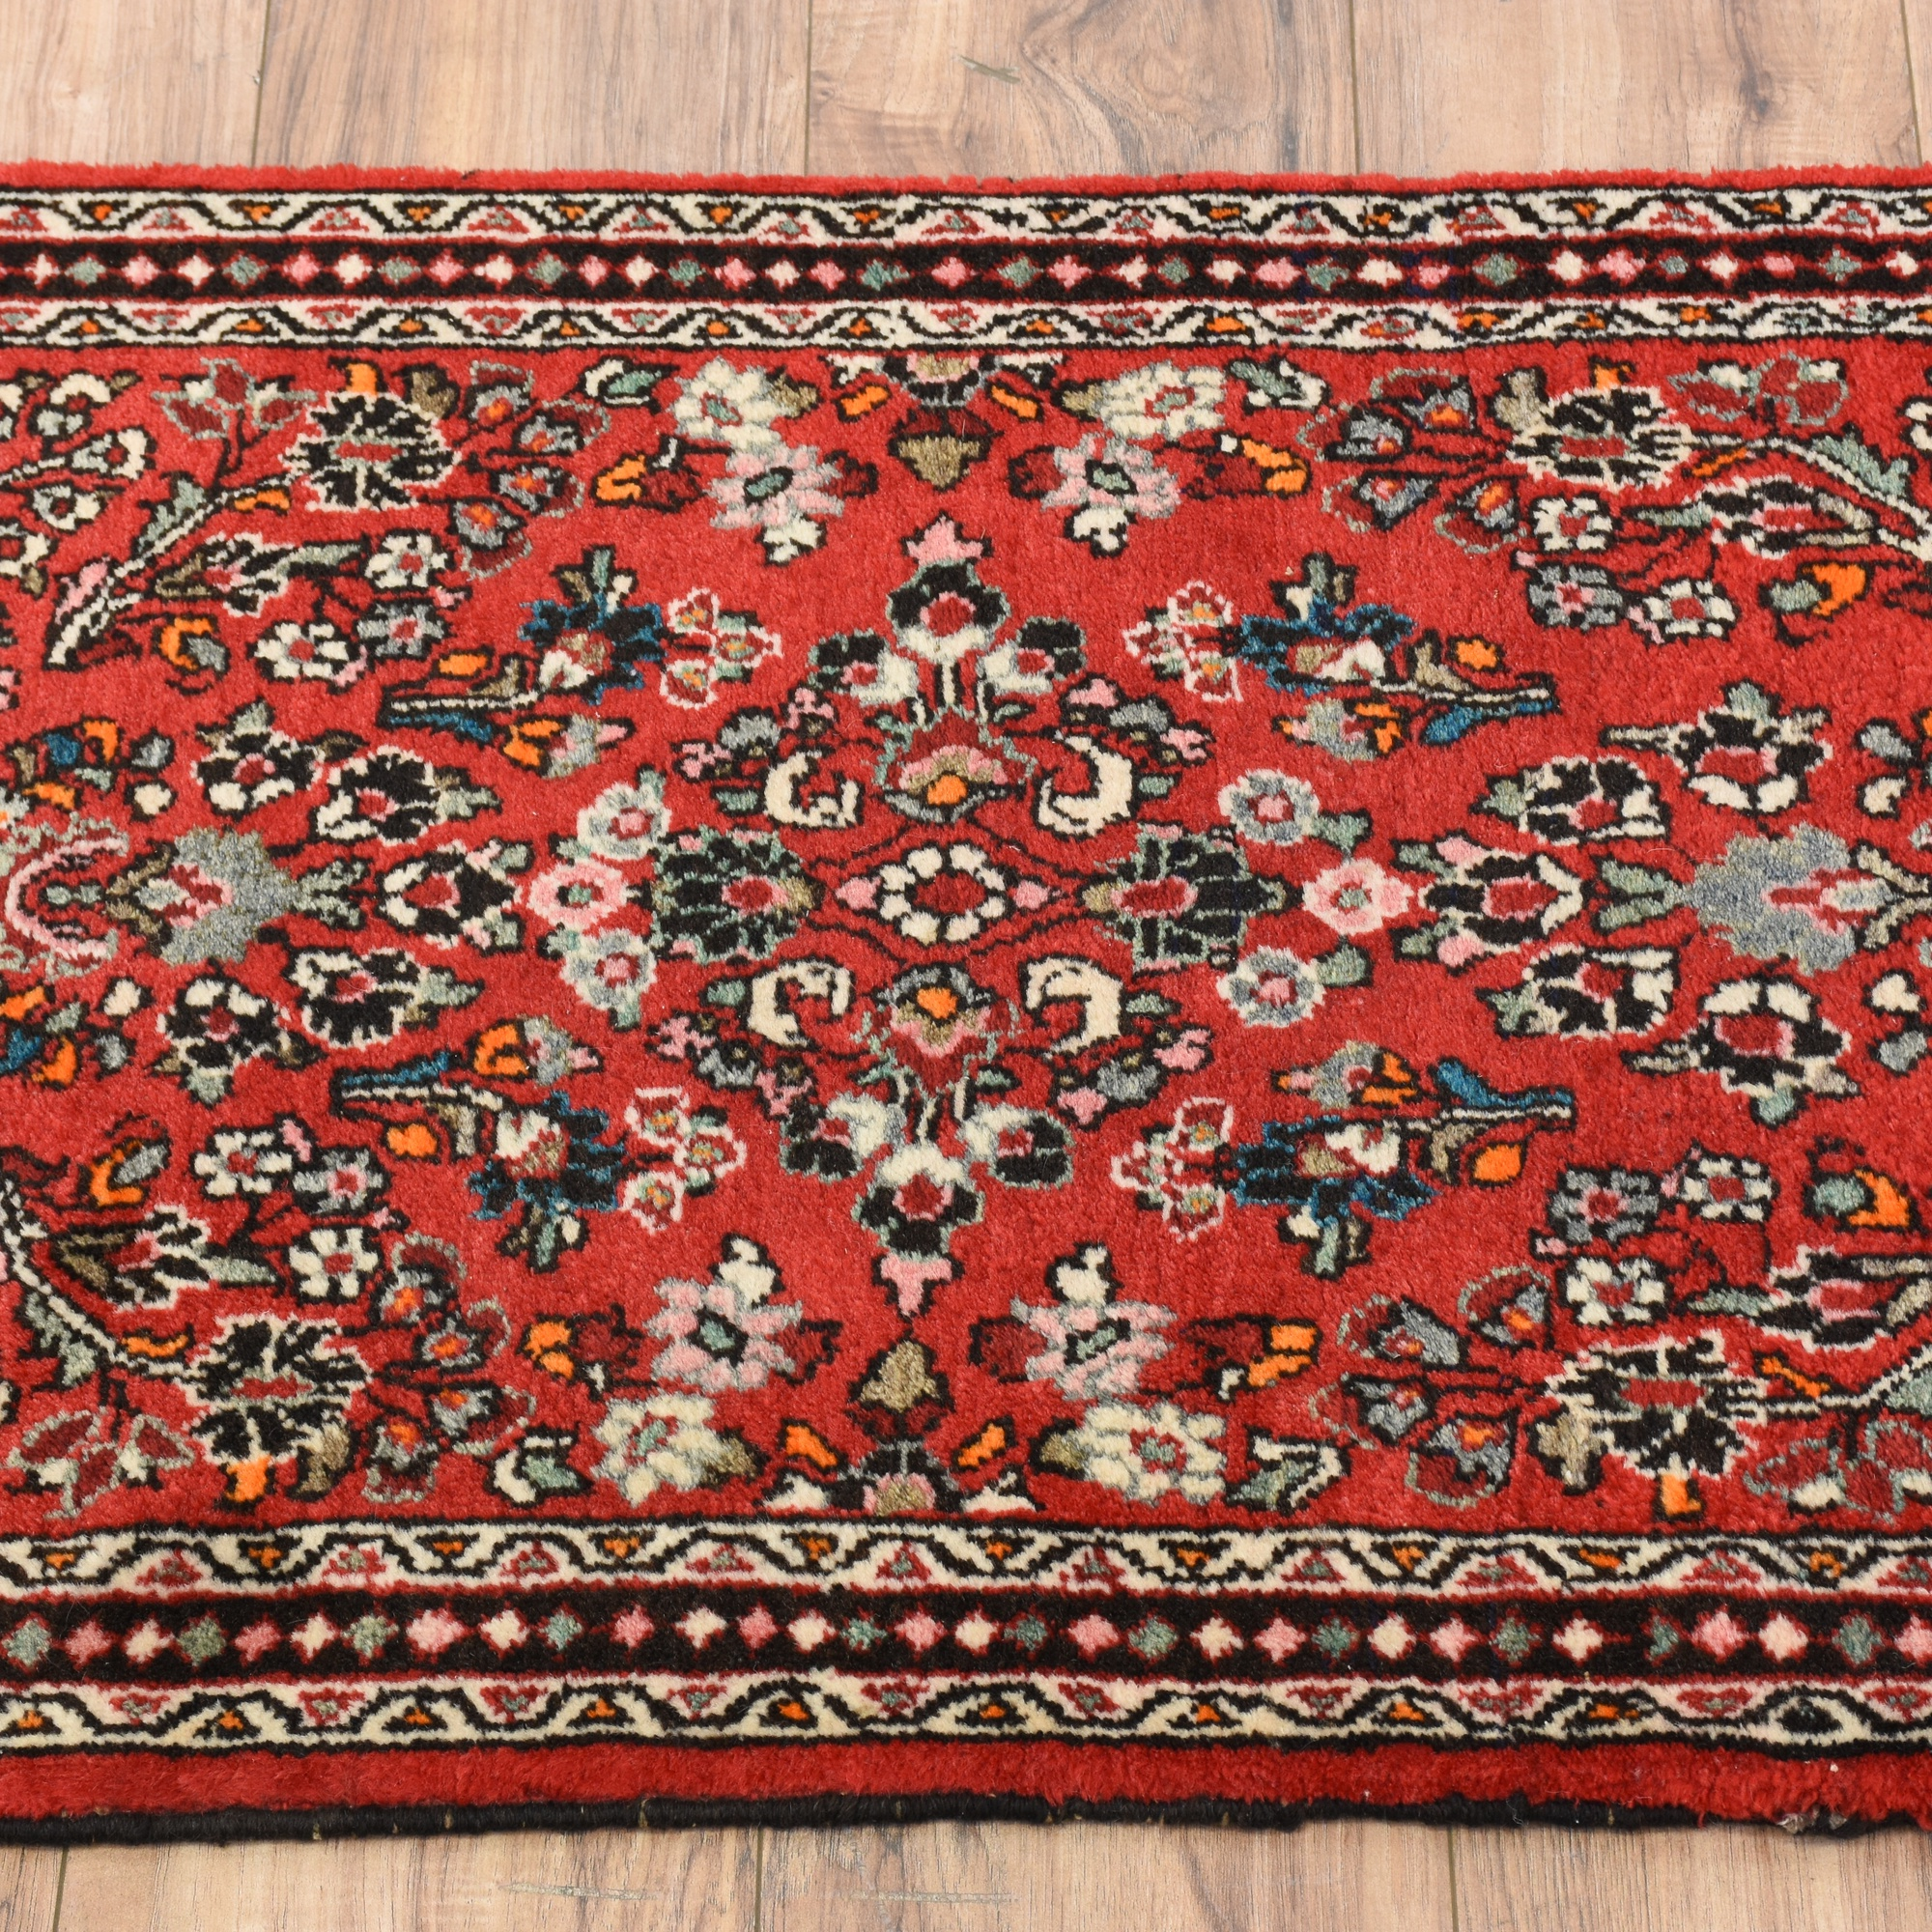 Hand Woven Red Persian Wool Rug